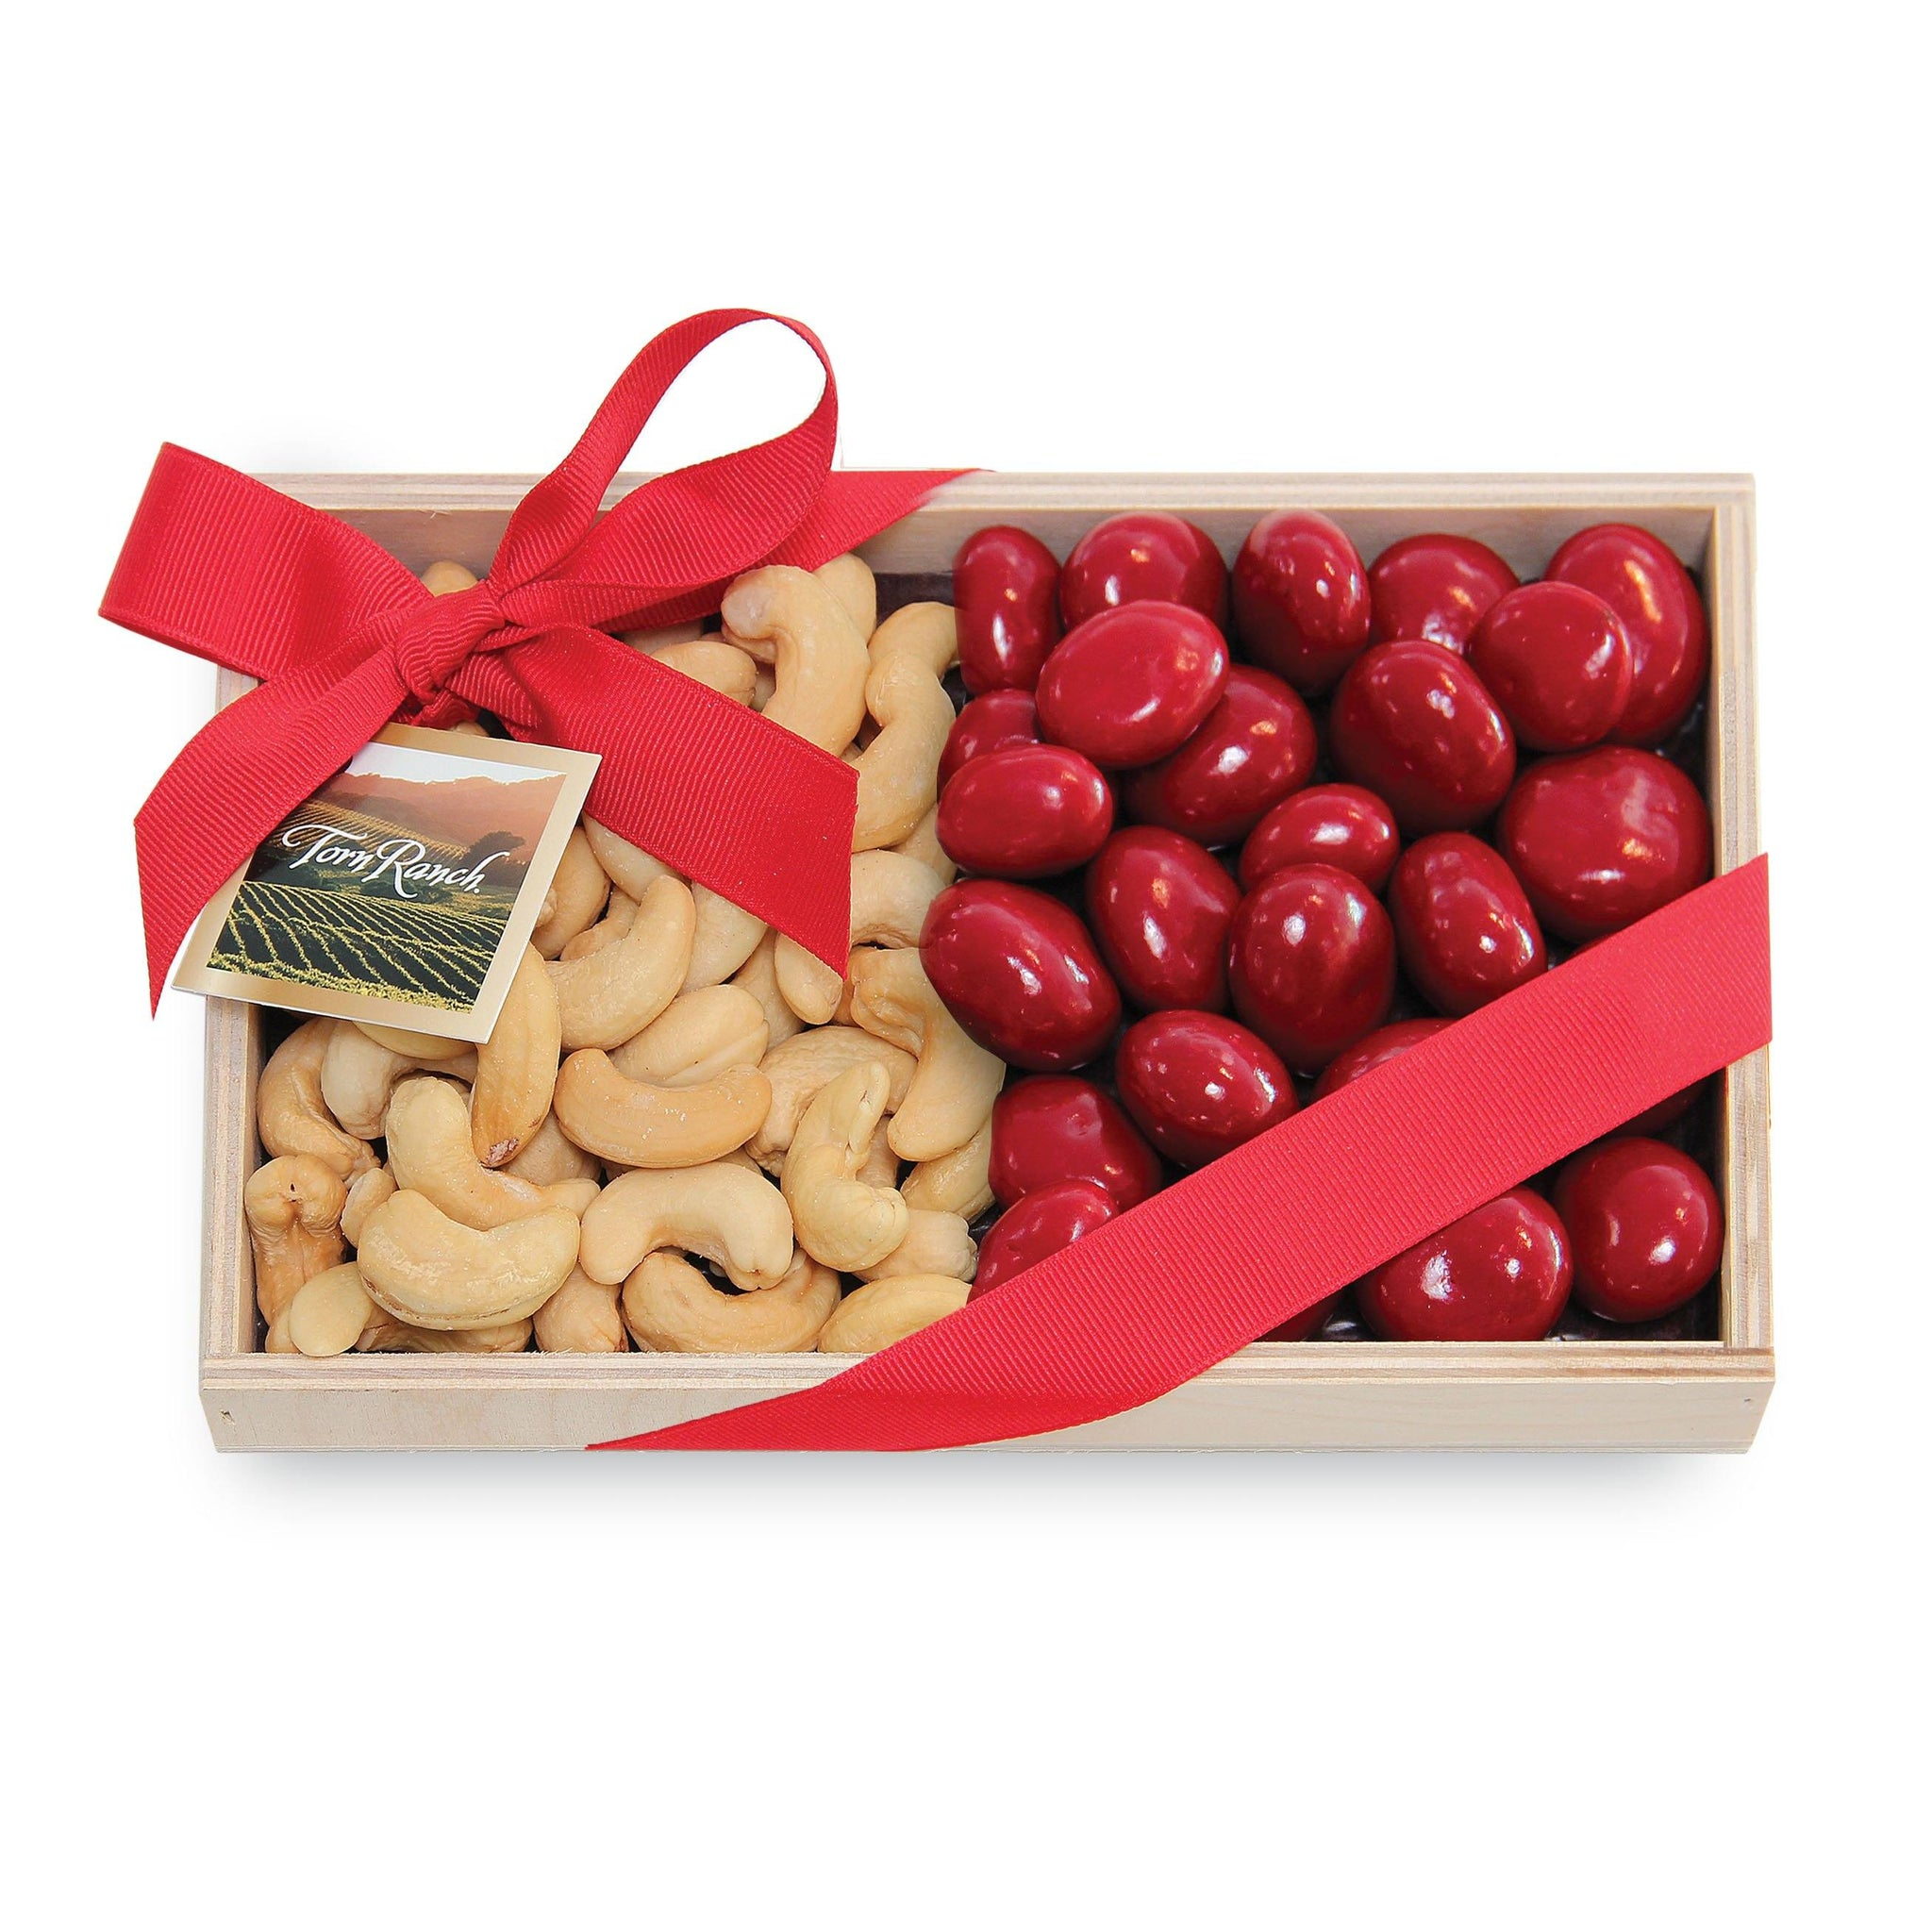 Colossal Cashews and Chocolate Cherries in Wood Tray Unique Gifts & Gift Baskets vendor-unknown